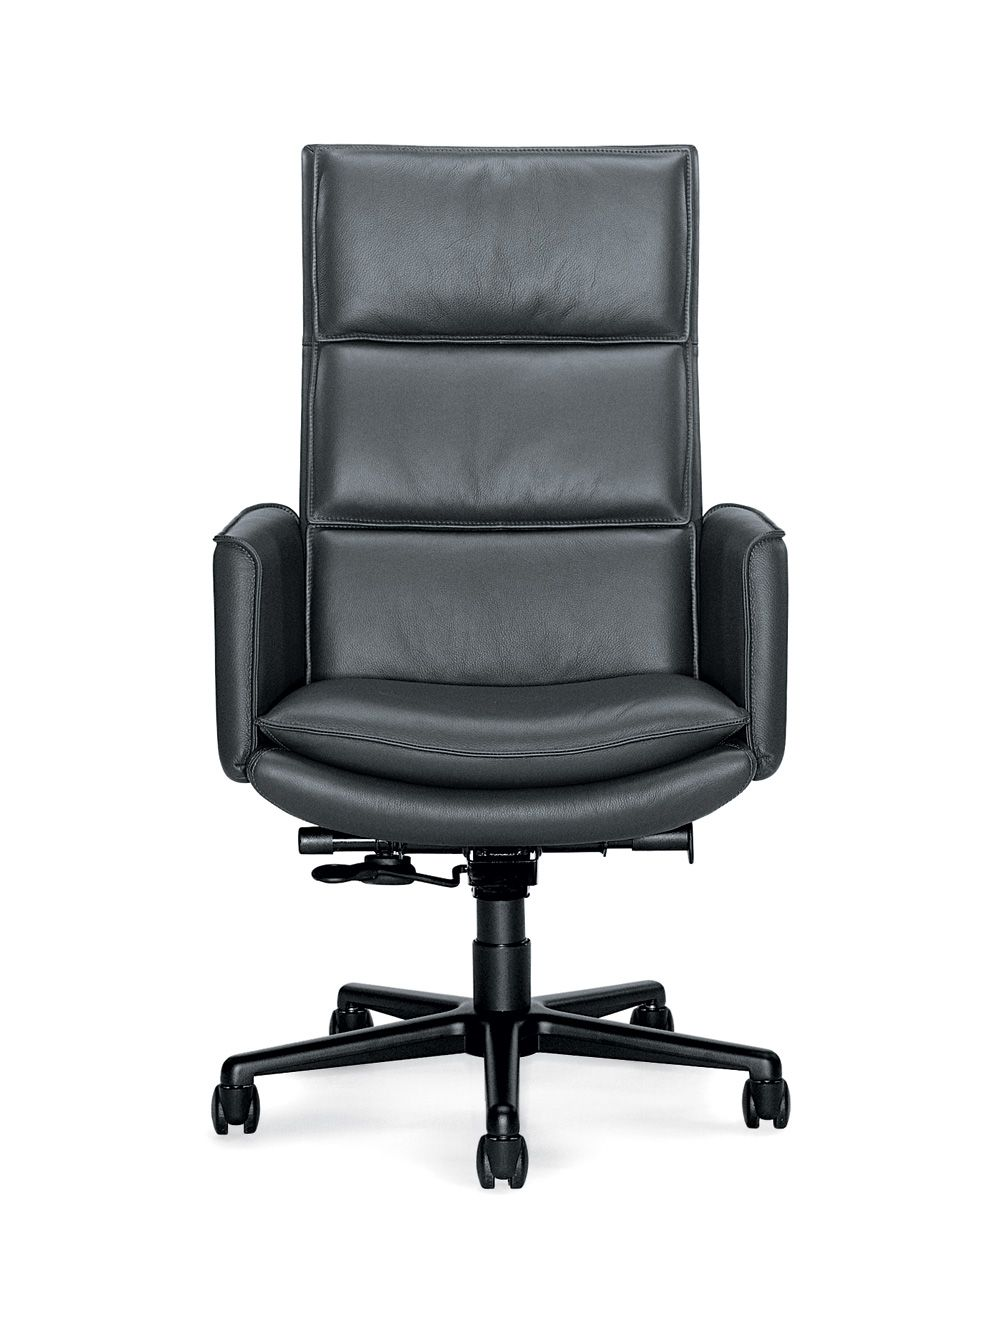 Groovy Alandesk Com Elite By Keilhauer Executive High Back Caraccident5 Cool Chair Designs And Ideas Caraccident5Info